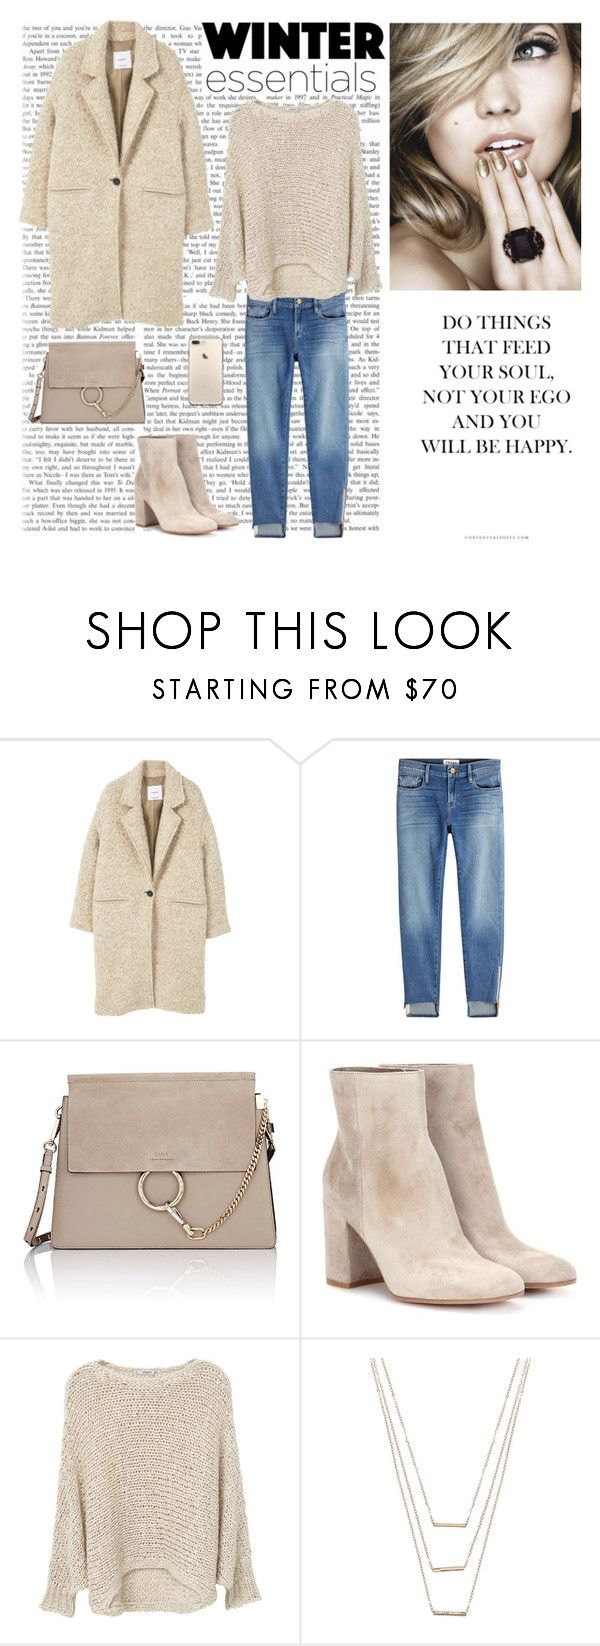 """Untitled #173"" by dorey on Polyvore featuring MANGO, Frame, Chloé, Gianvito Rossi and ERTH"